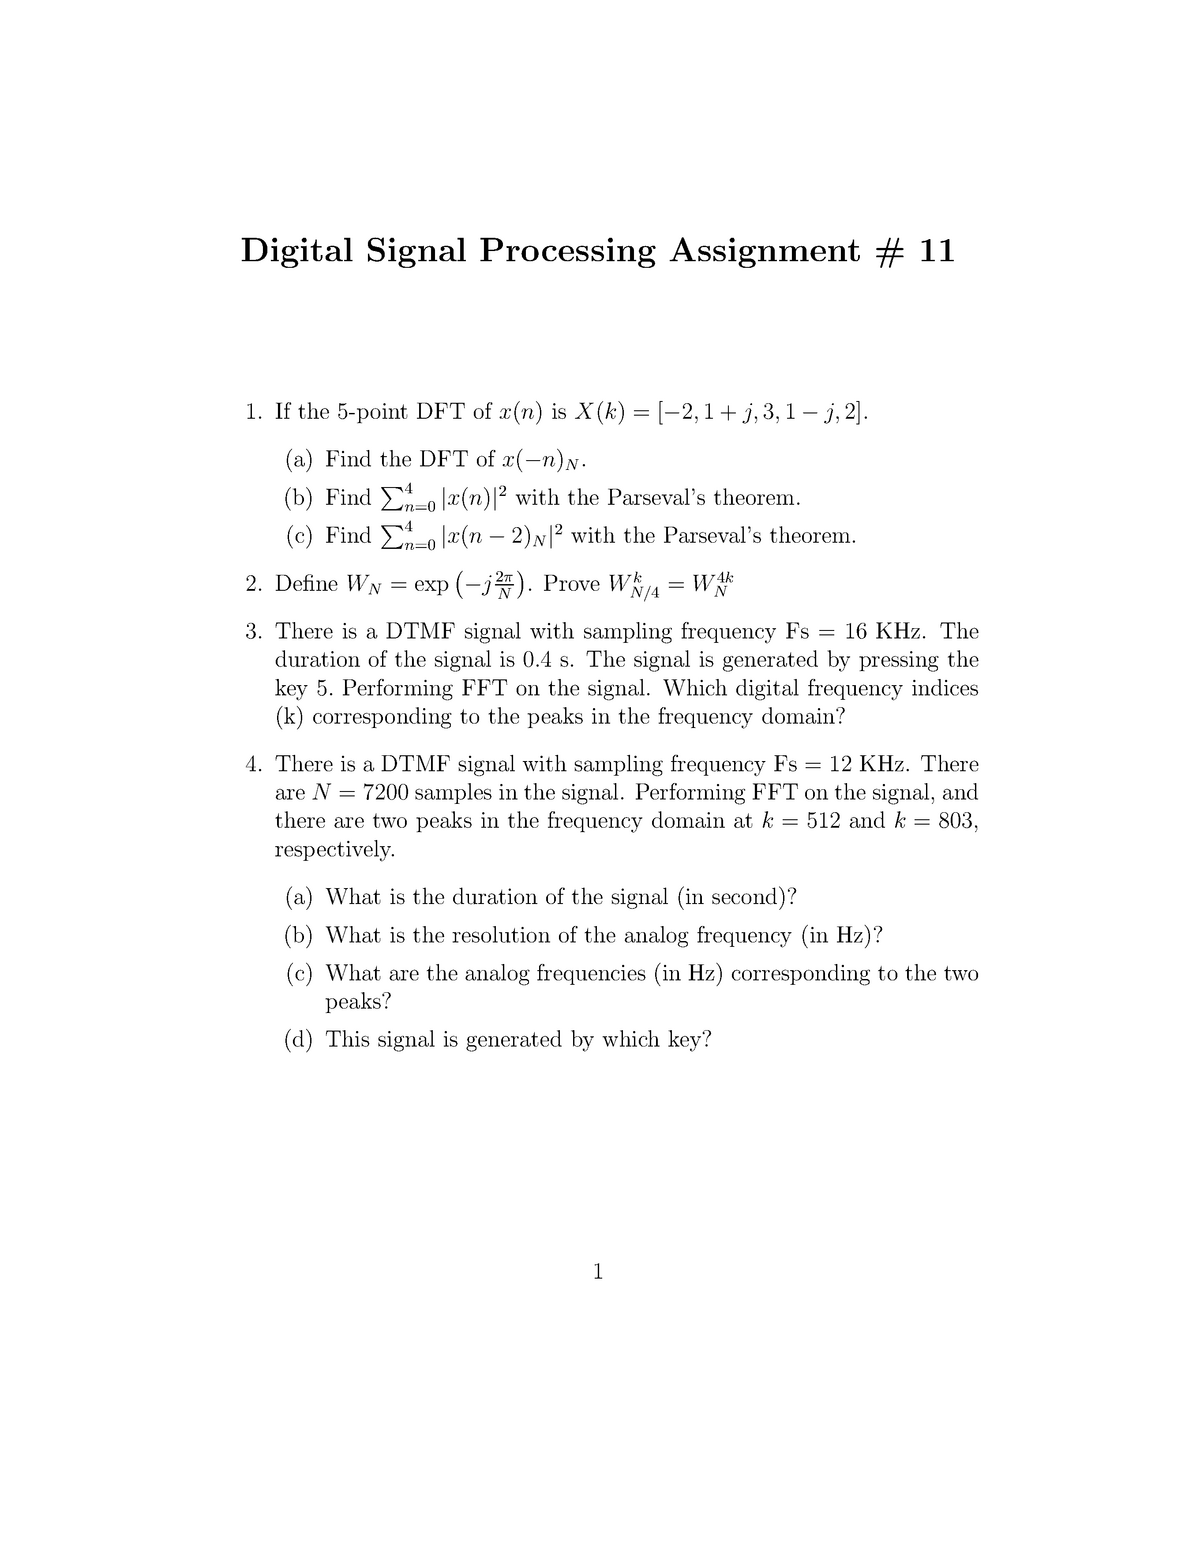 Assignment 11 - Questions - ELEG 5173L: Digital Signal Processing